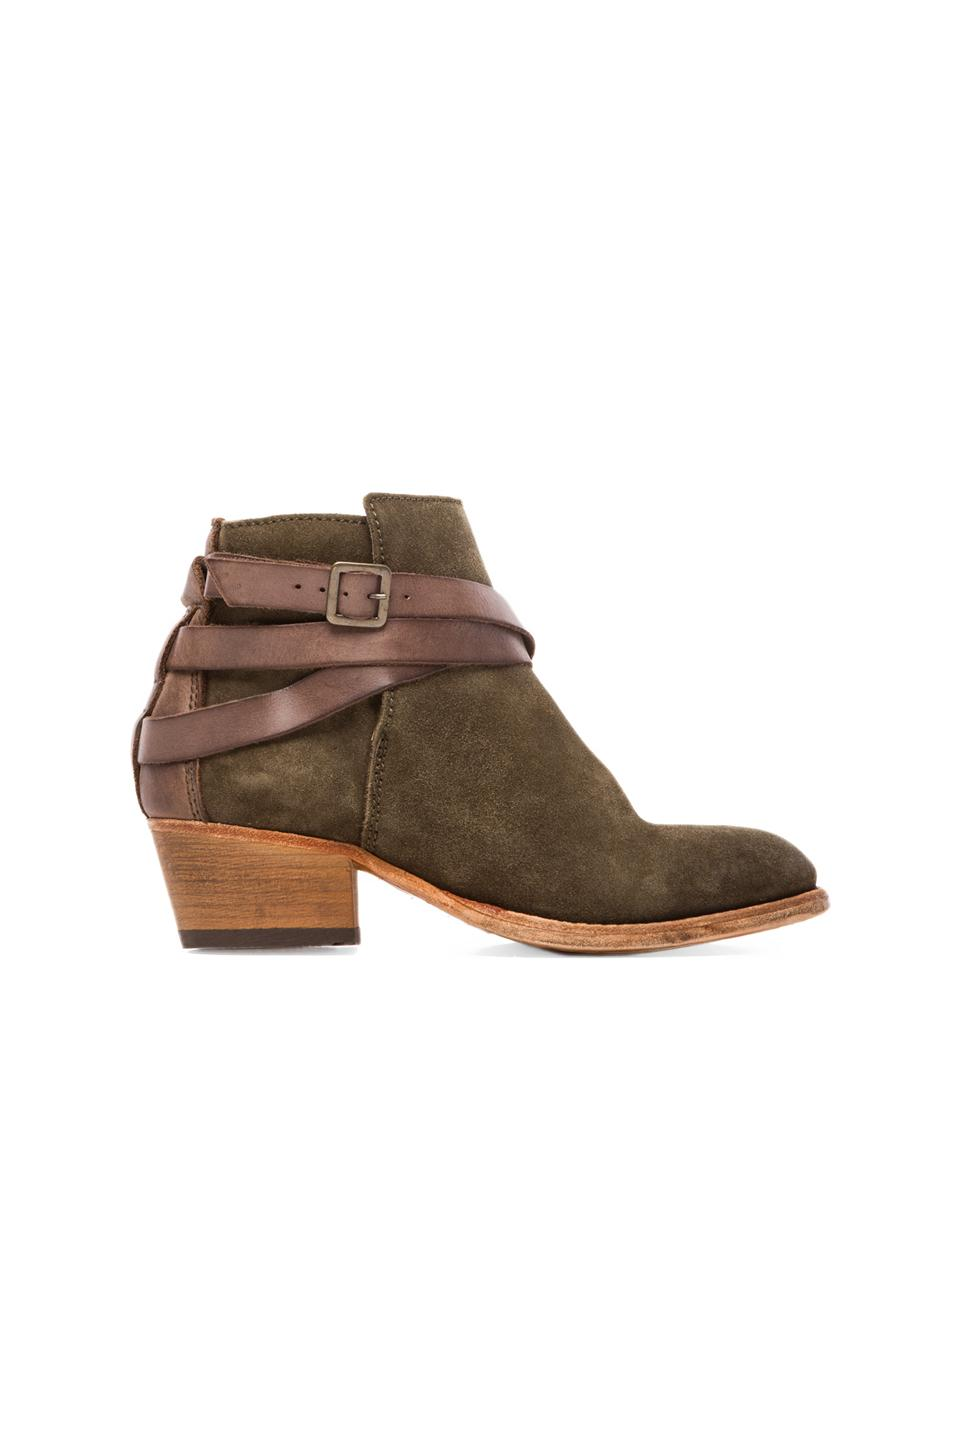 H by Hudson Horigan Bootie in Suede Moss